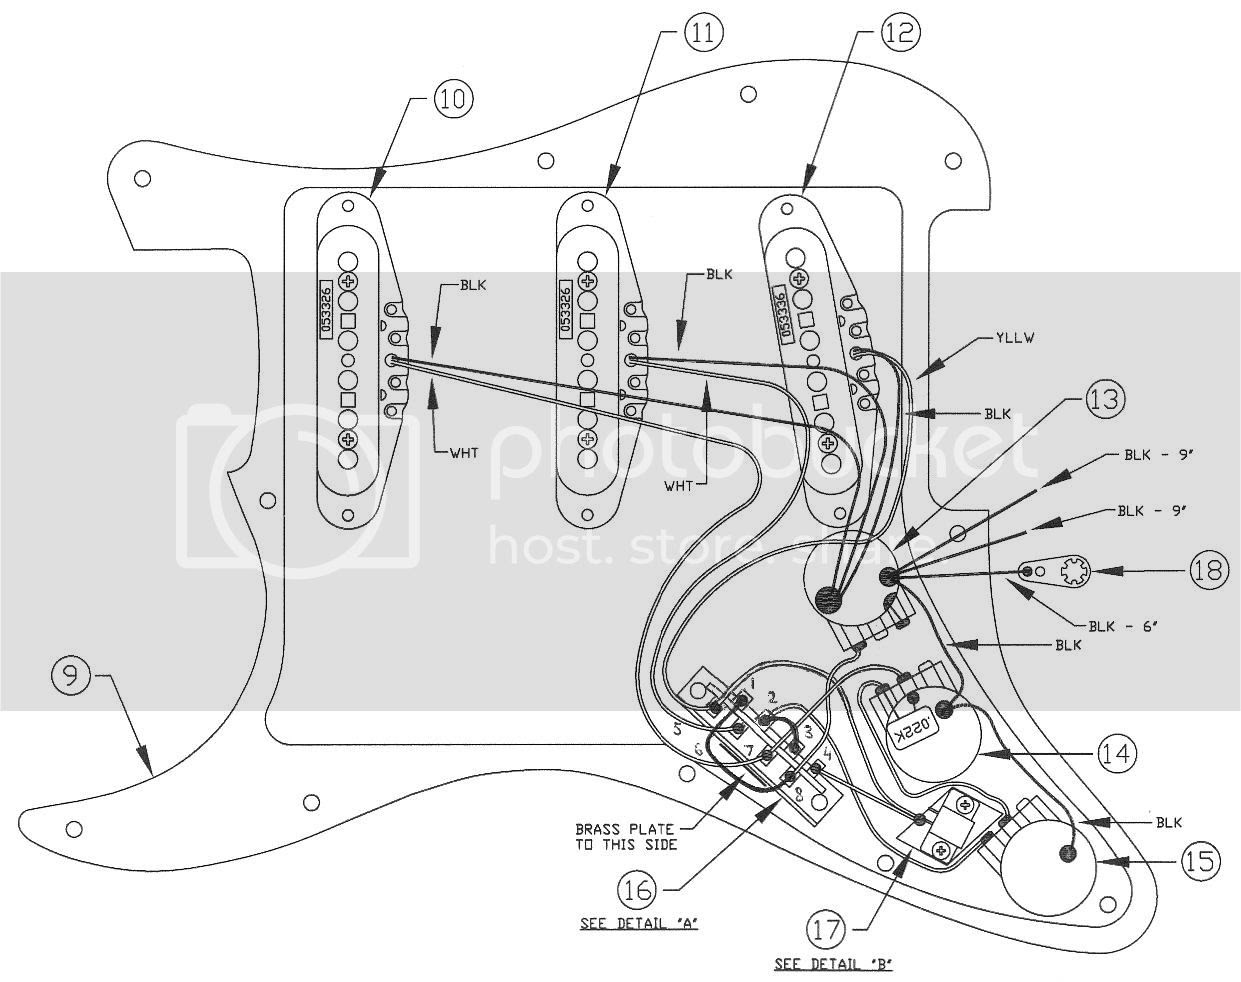 Deluxe Player Strat - wiring ? | The Gear Page